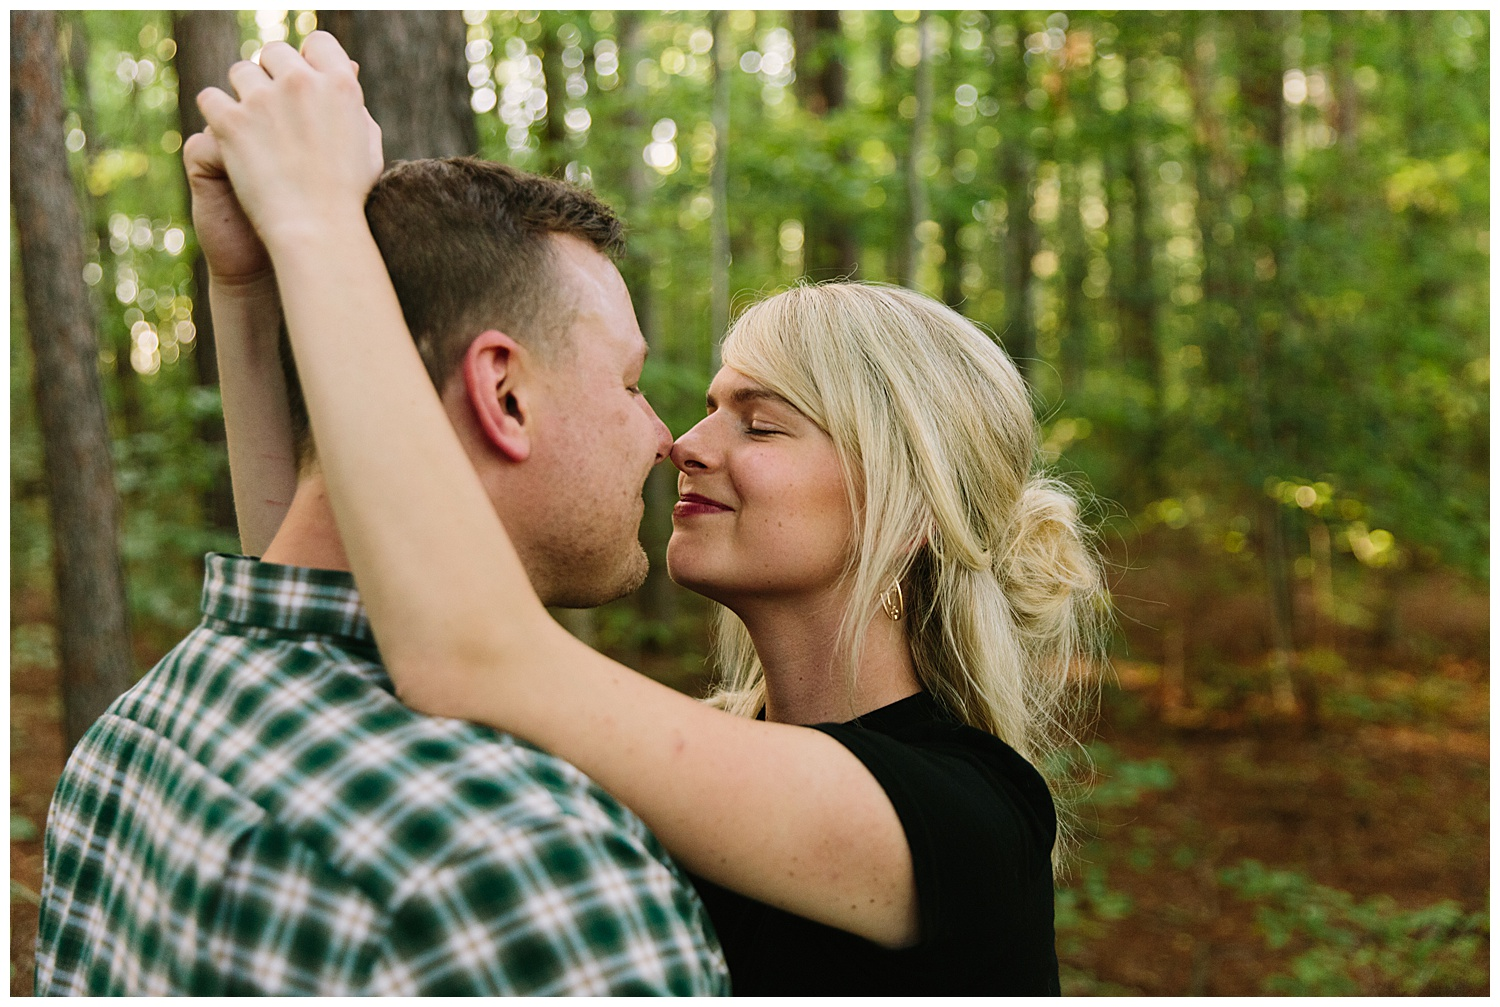 trent.and.kendra.photography.bernheim.forest.photos-62.jpg